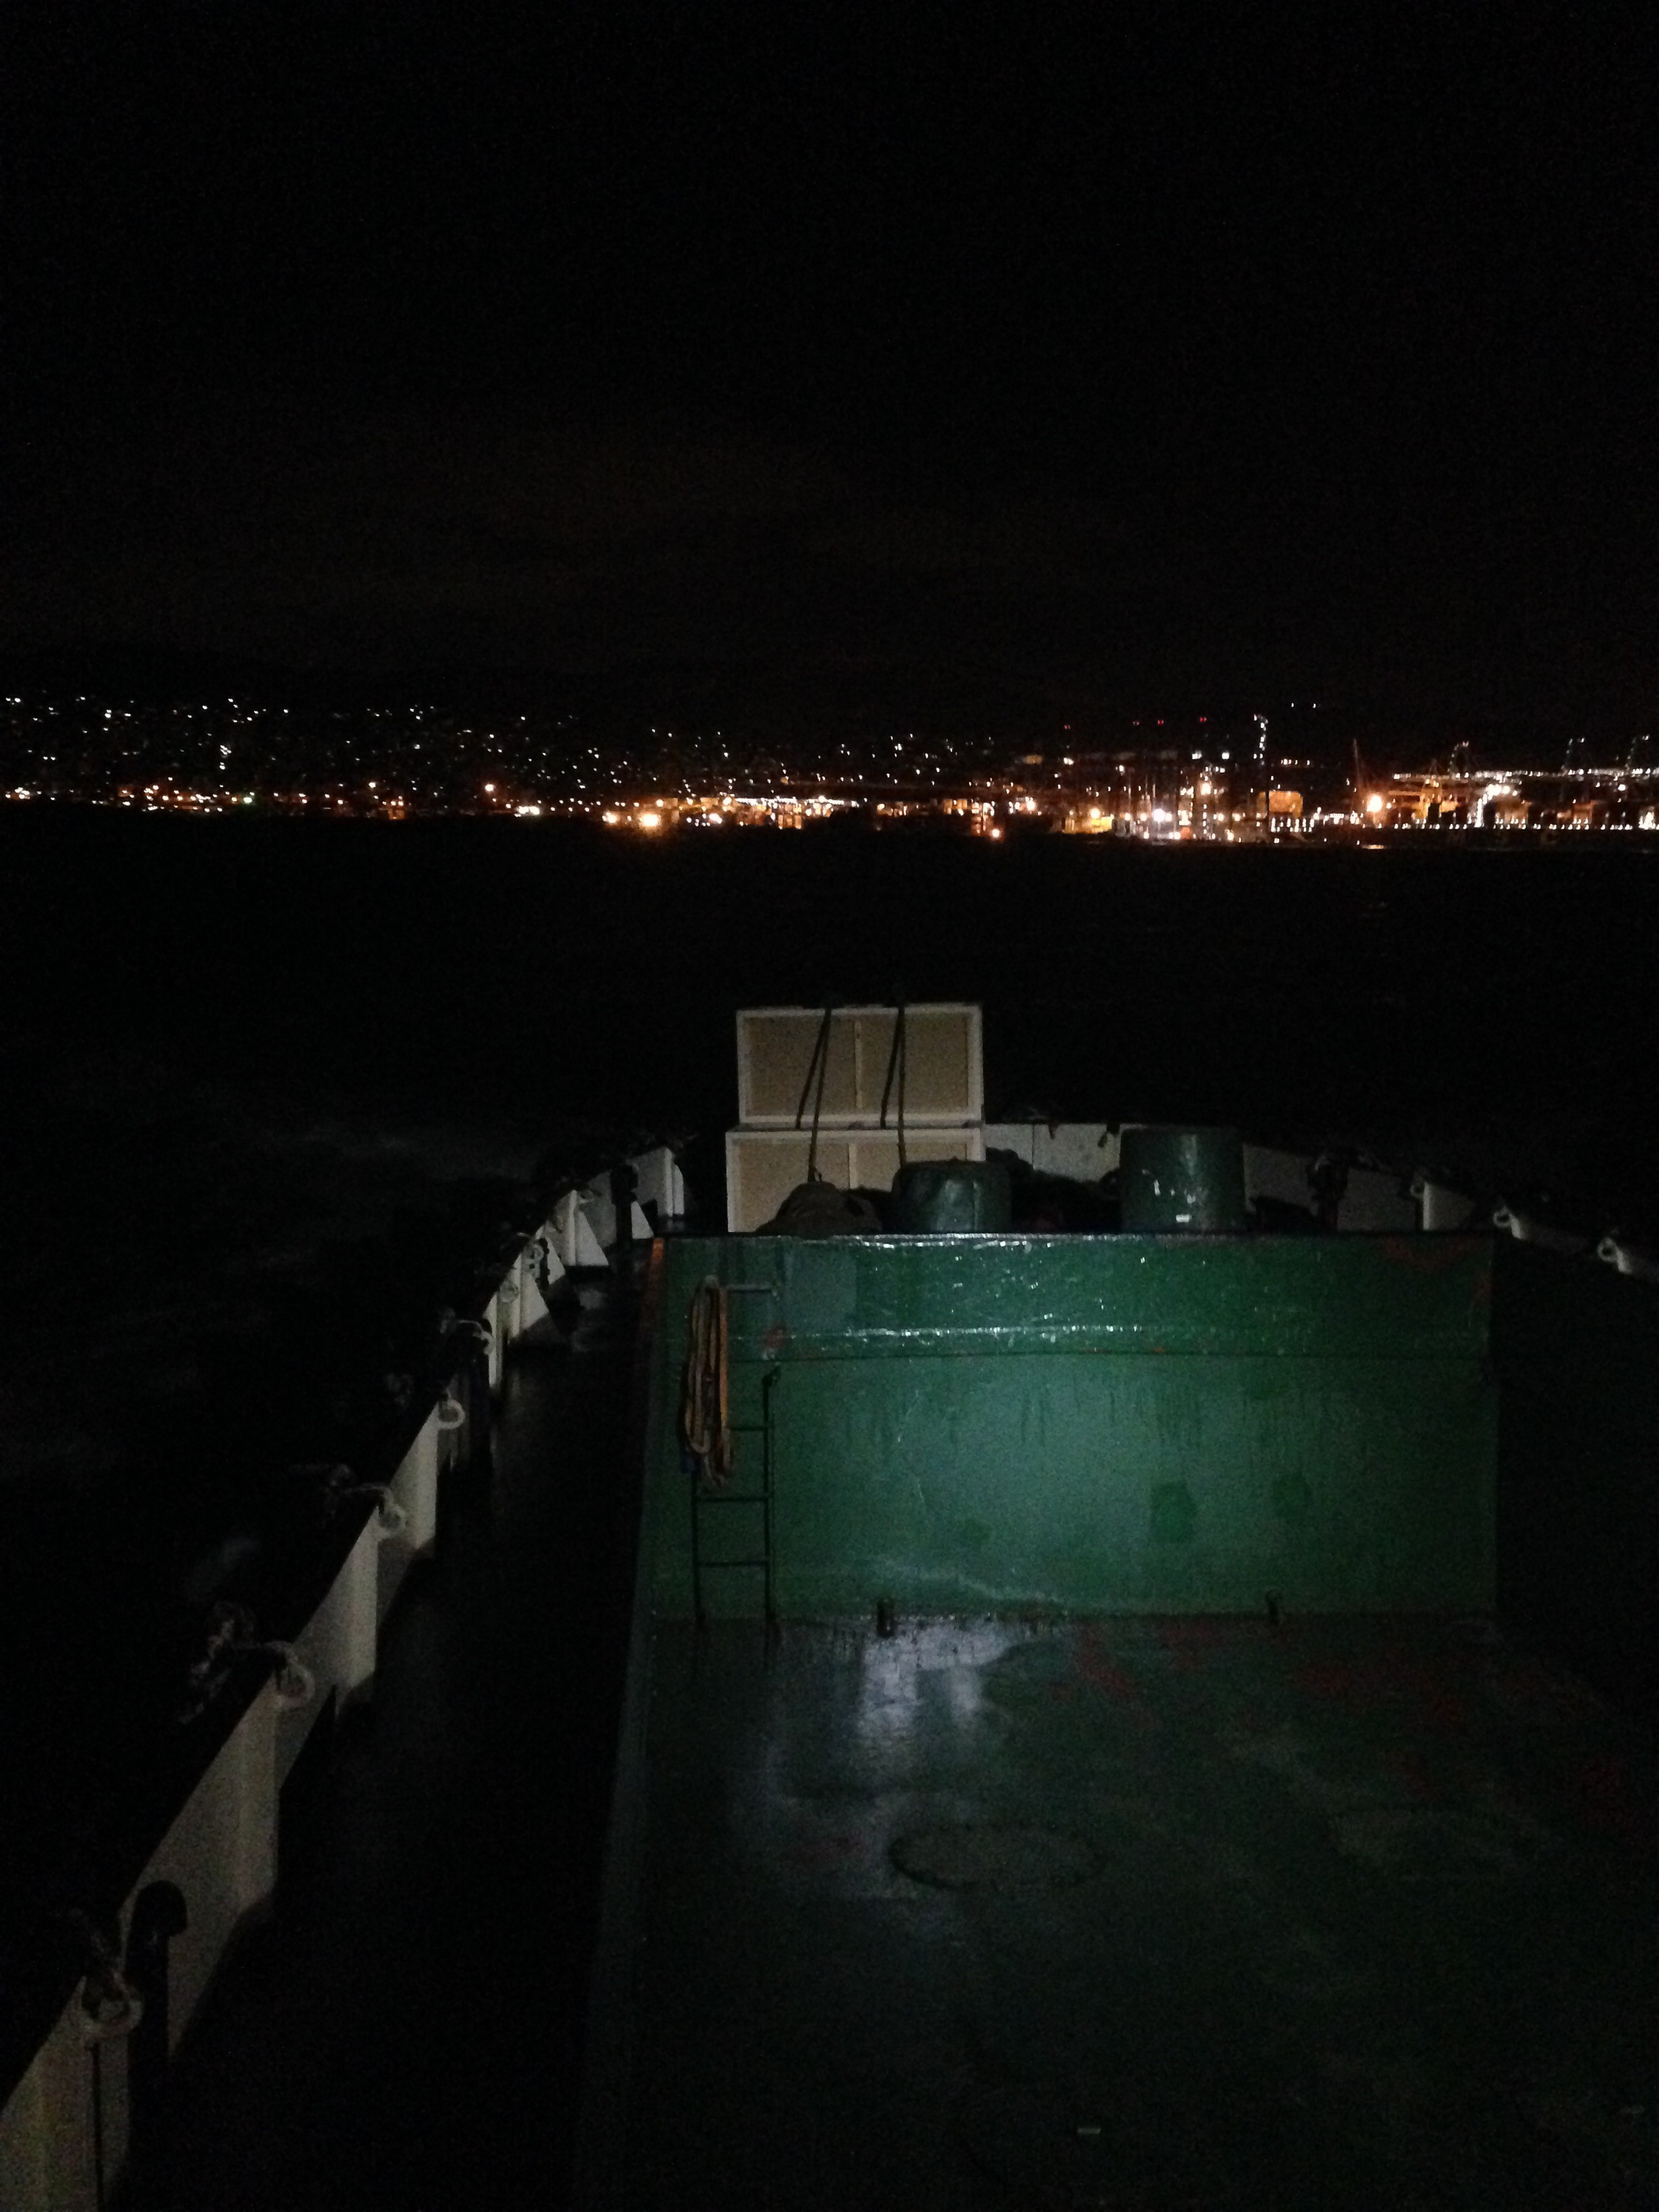 Page's crate sculpture on a fishing boat in Piraeus Photo: Maayan Strauss